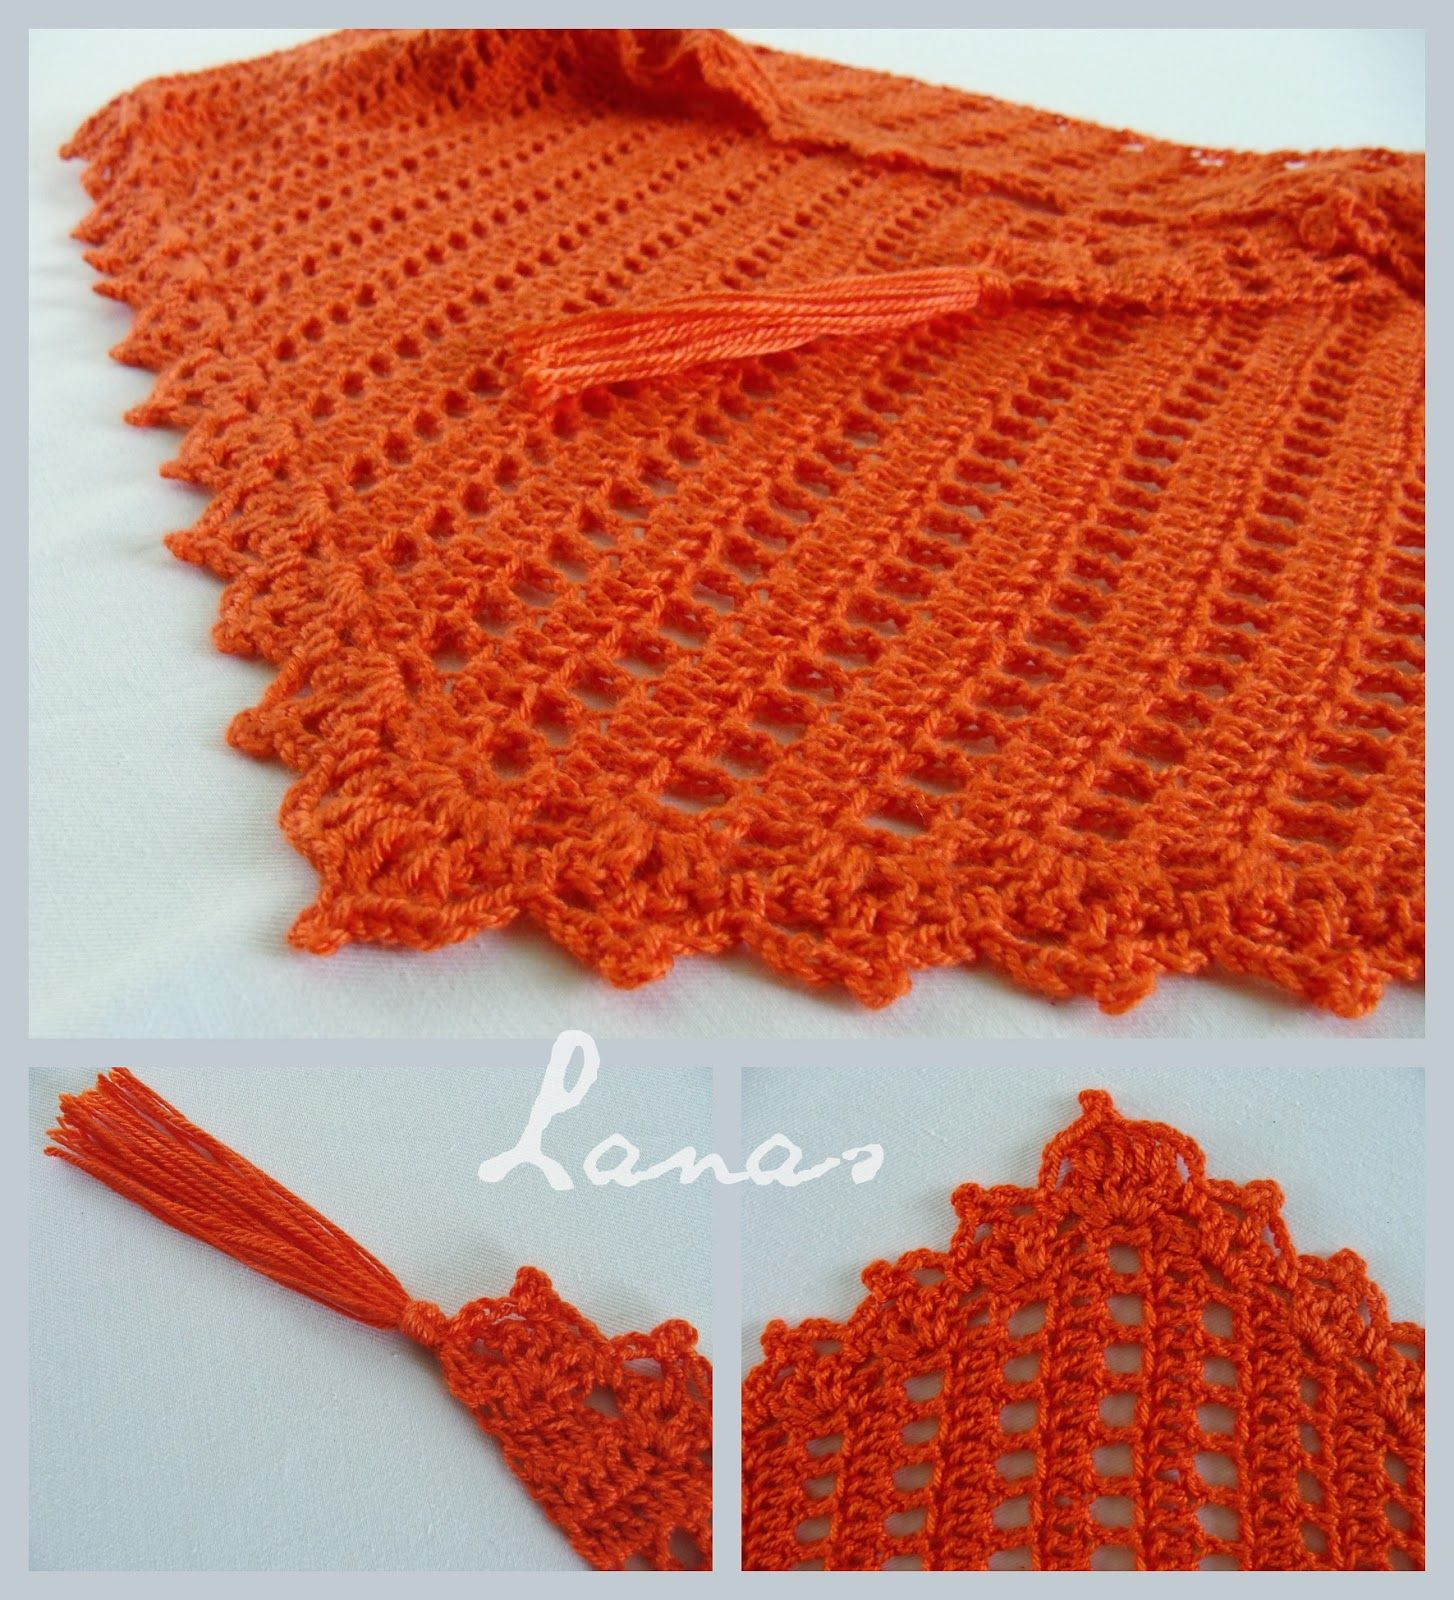 Crochet) Some of you crocheters will be happy to hear that there is ...